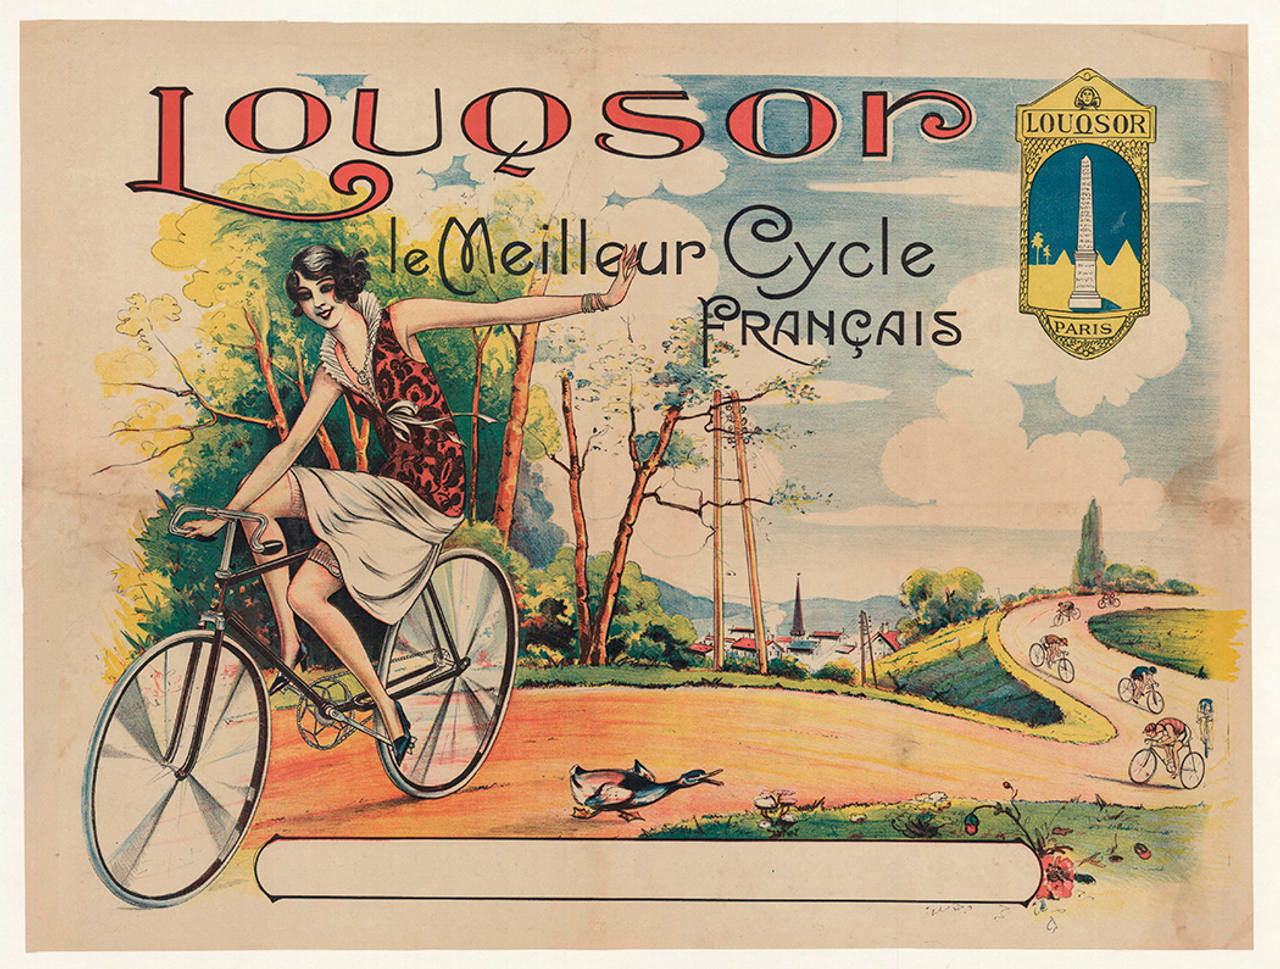 Louqsor Original Vintage Bicycle Poster